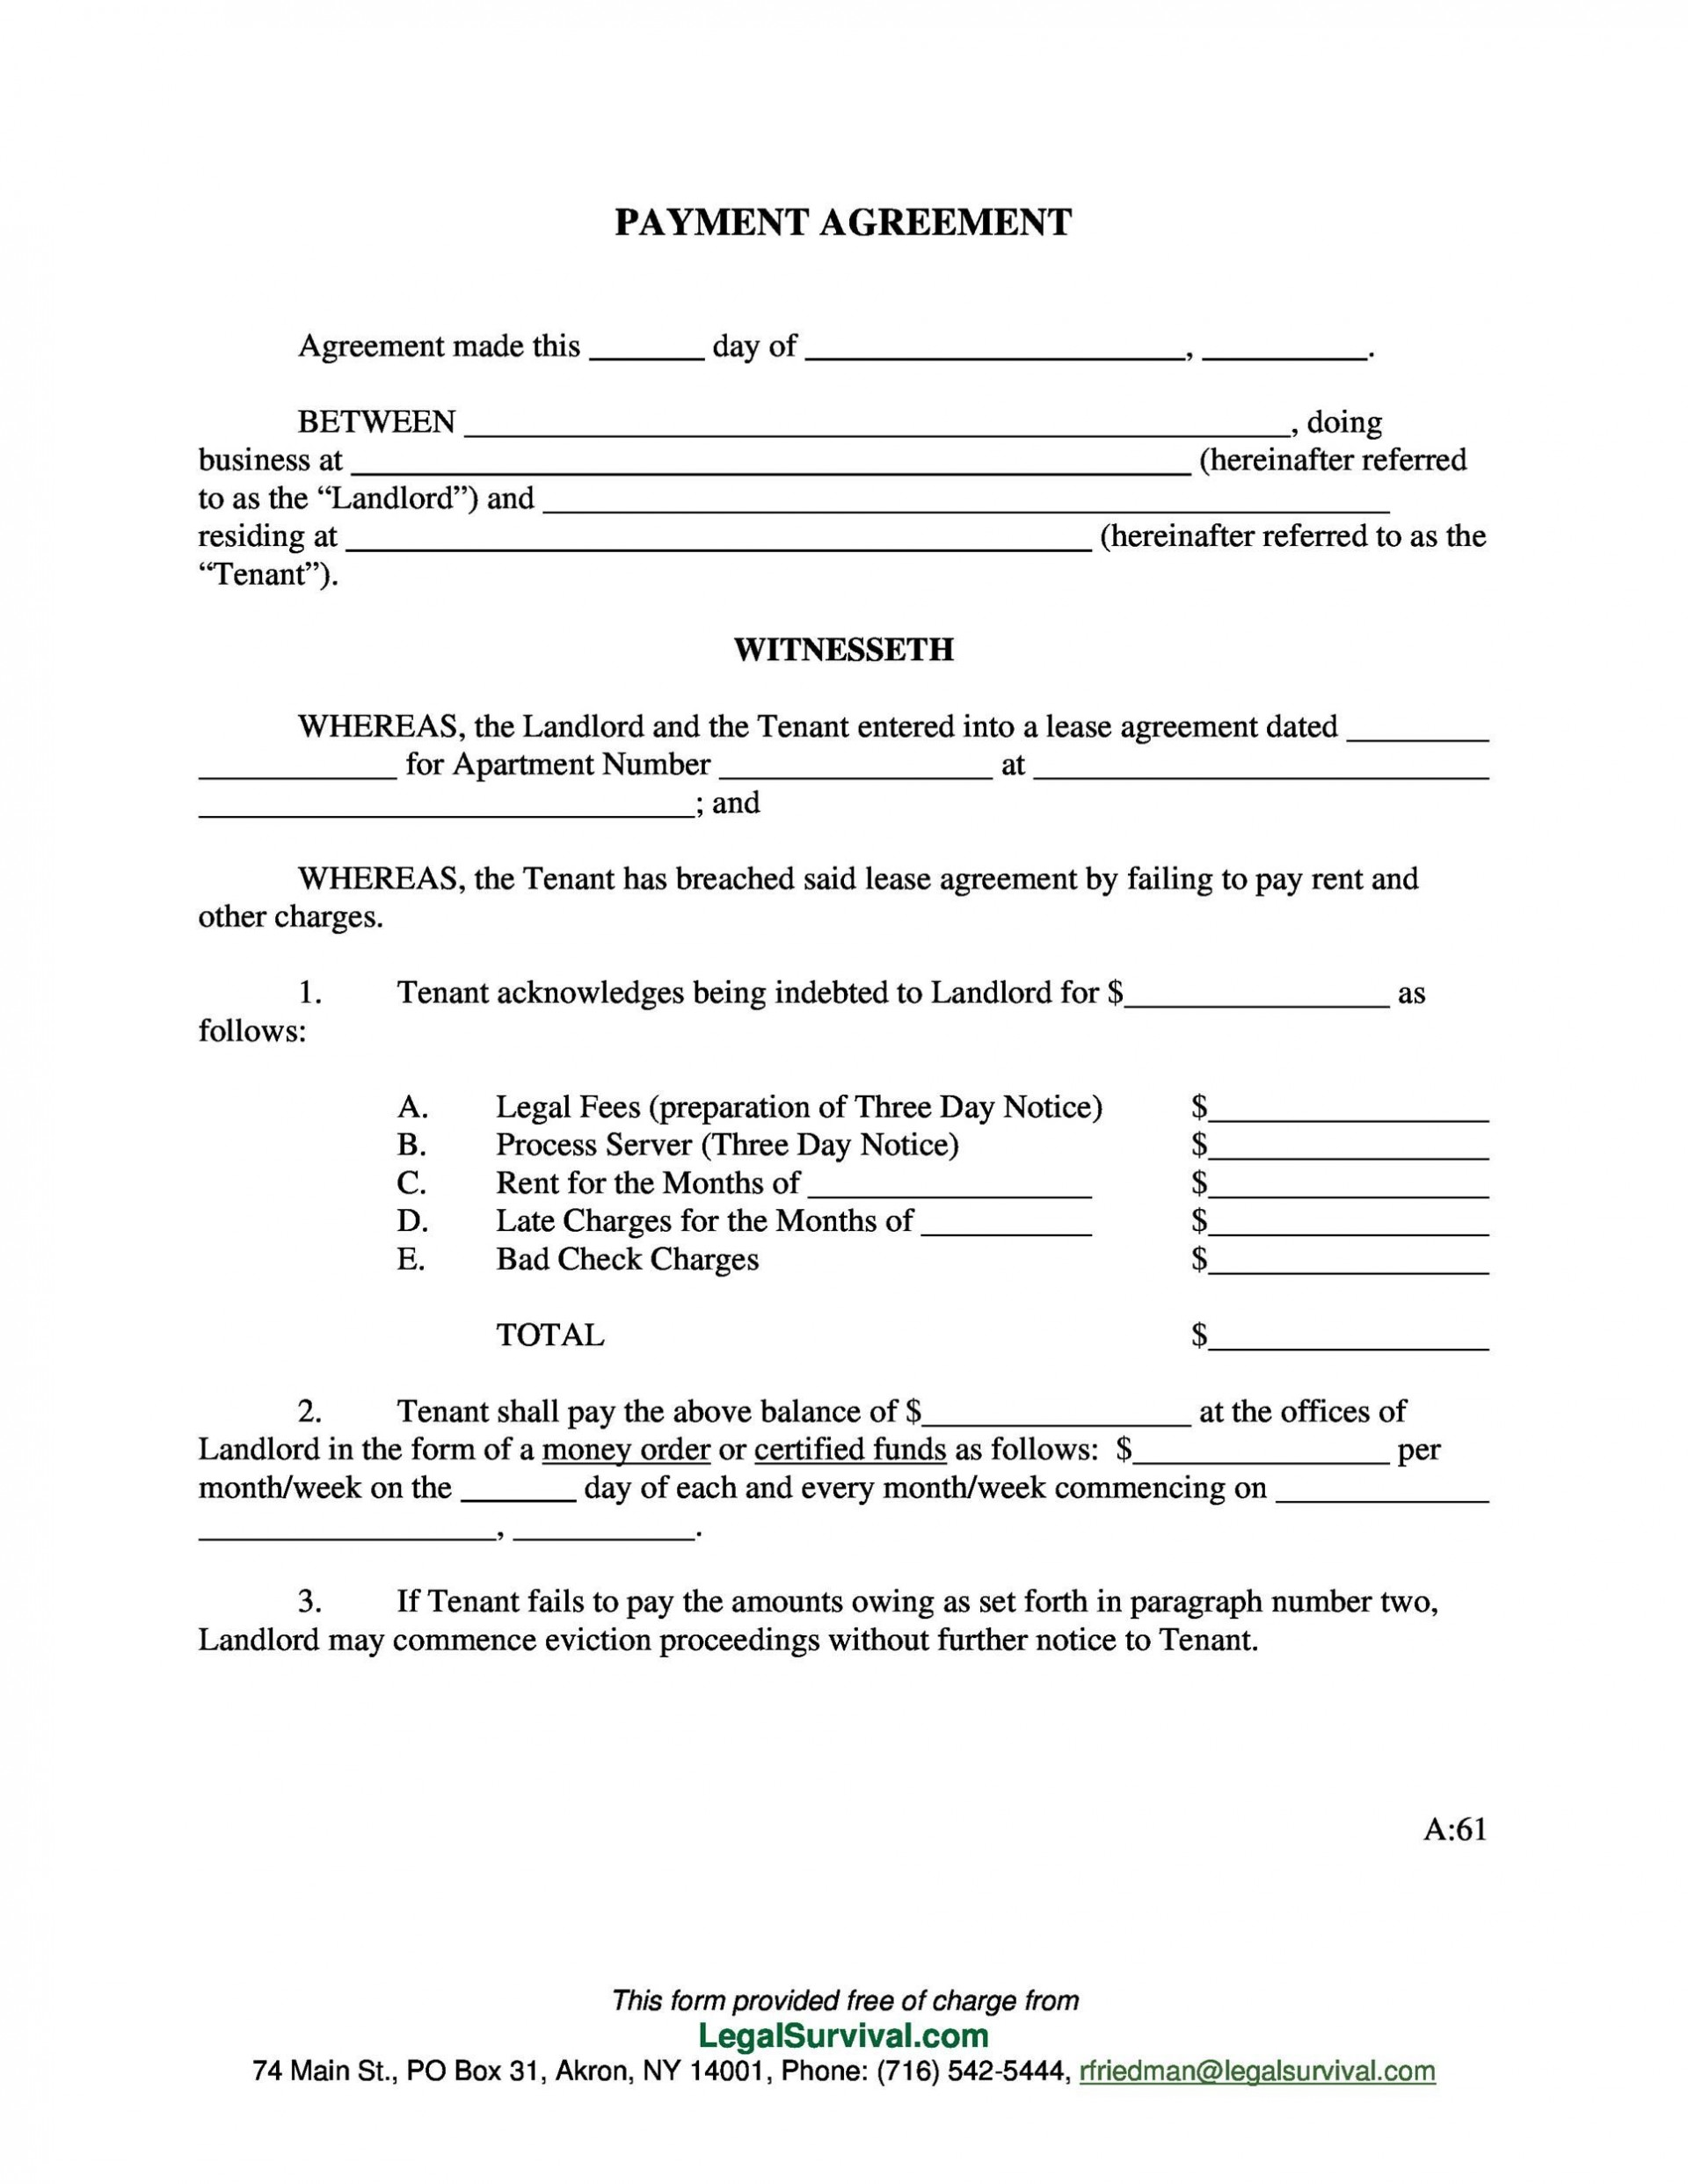 005 Remarkable Installment Payment Contract Template Sample  Car Agreement Simple Monthly1920